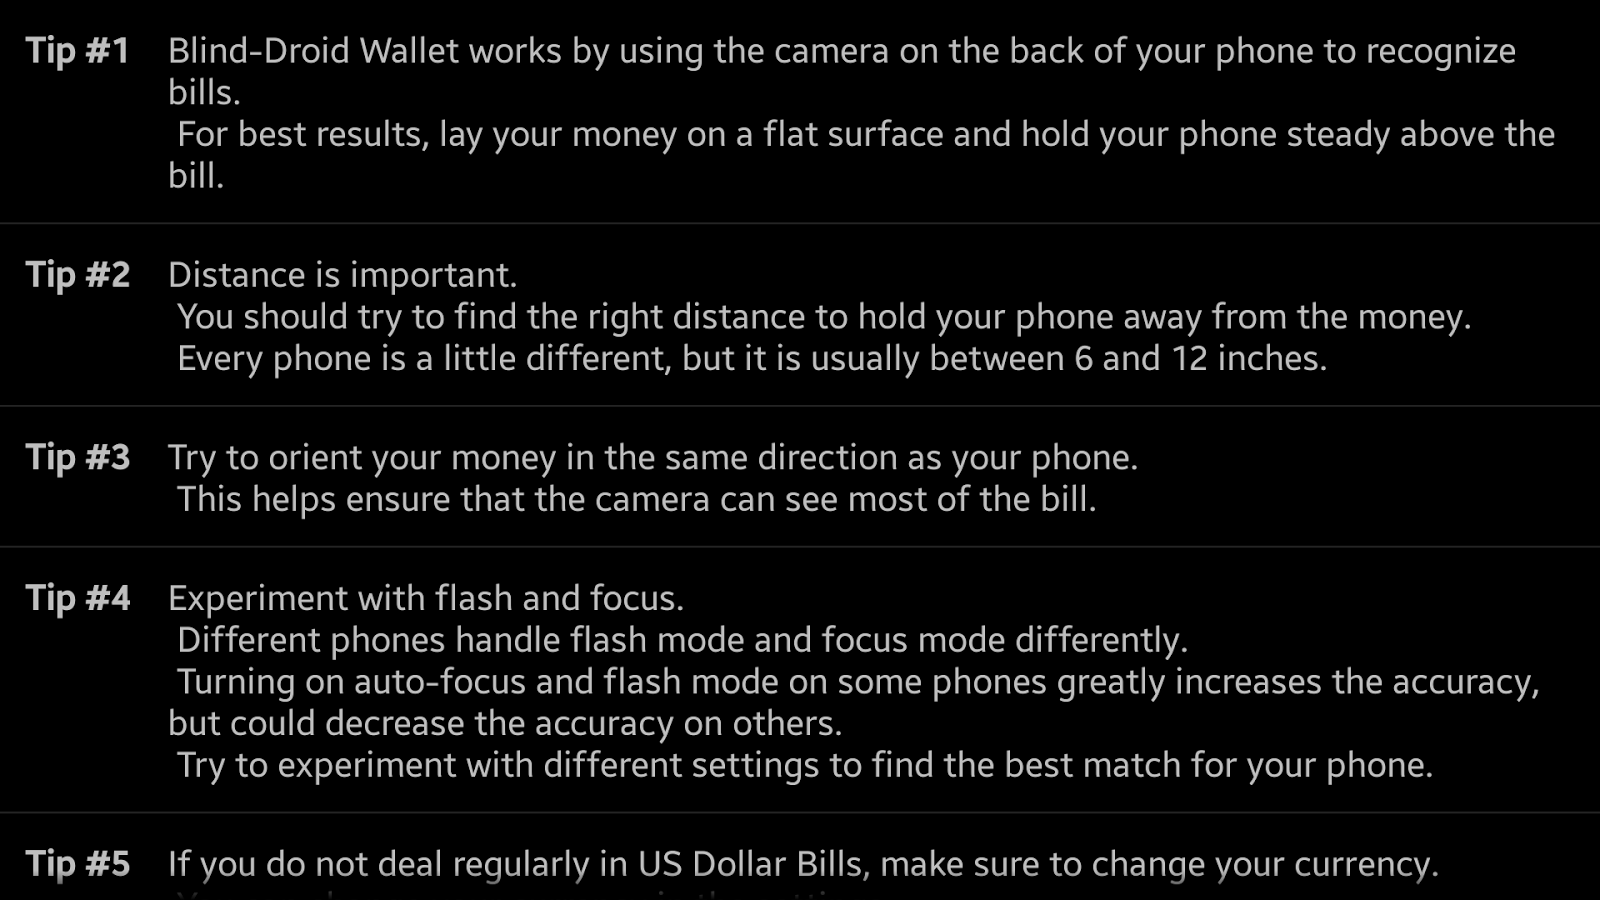 Blind-Droid Wallet: captura de tela